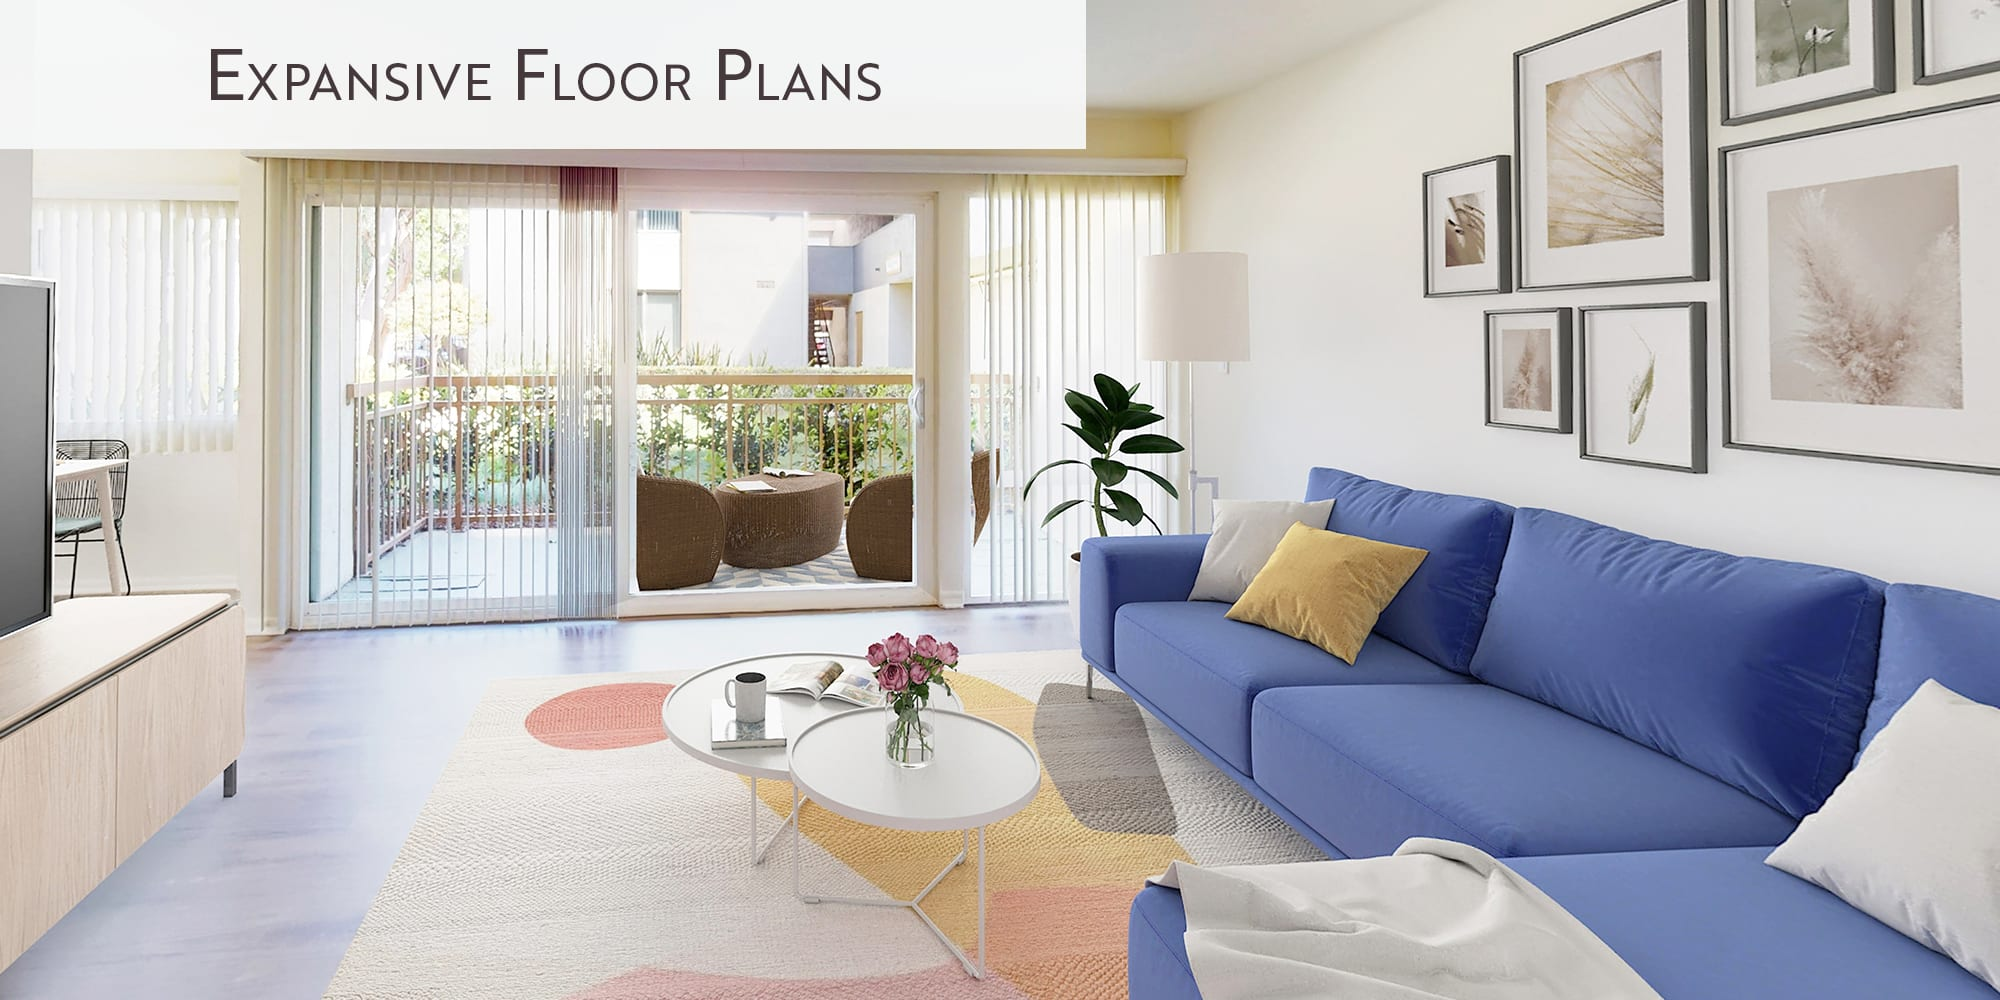 Expansive floor plans at West Park Village in Los Angeles, California